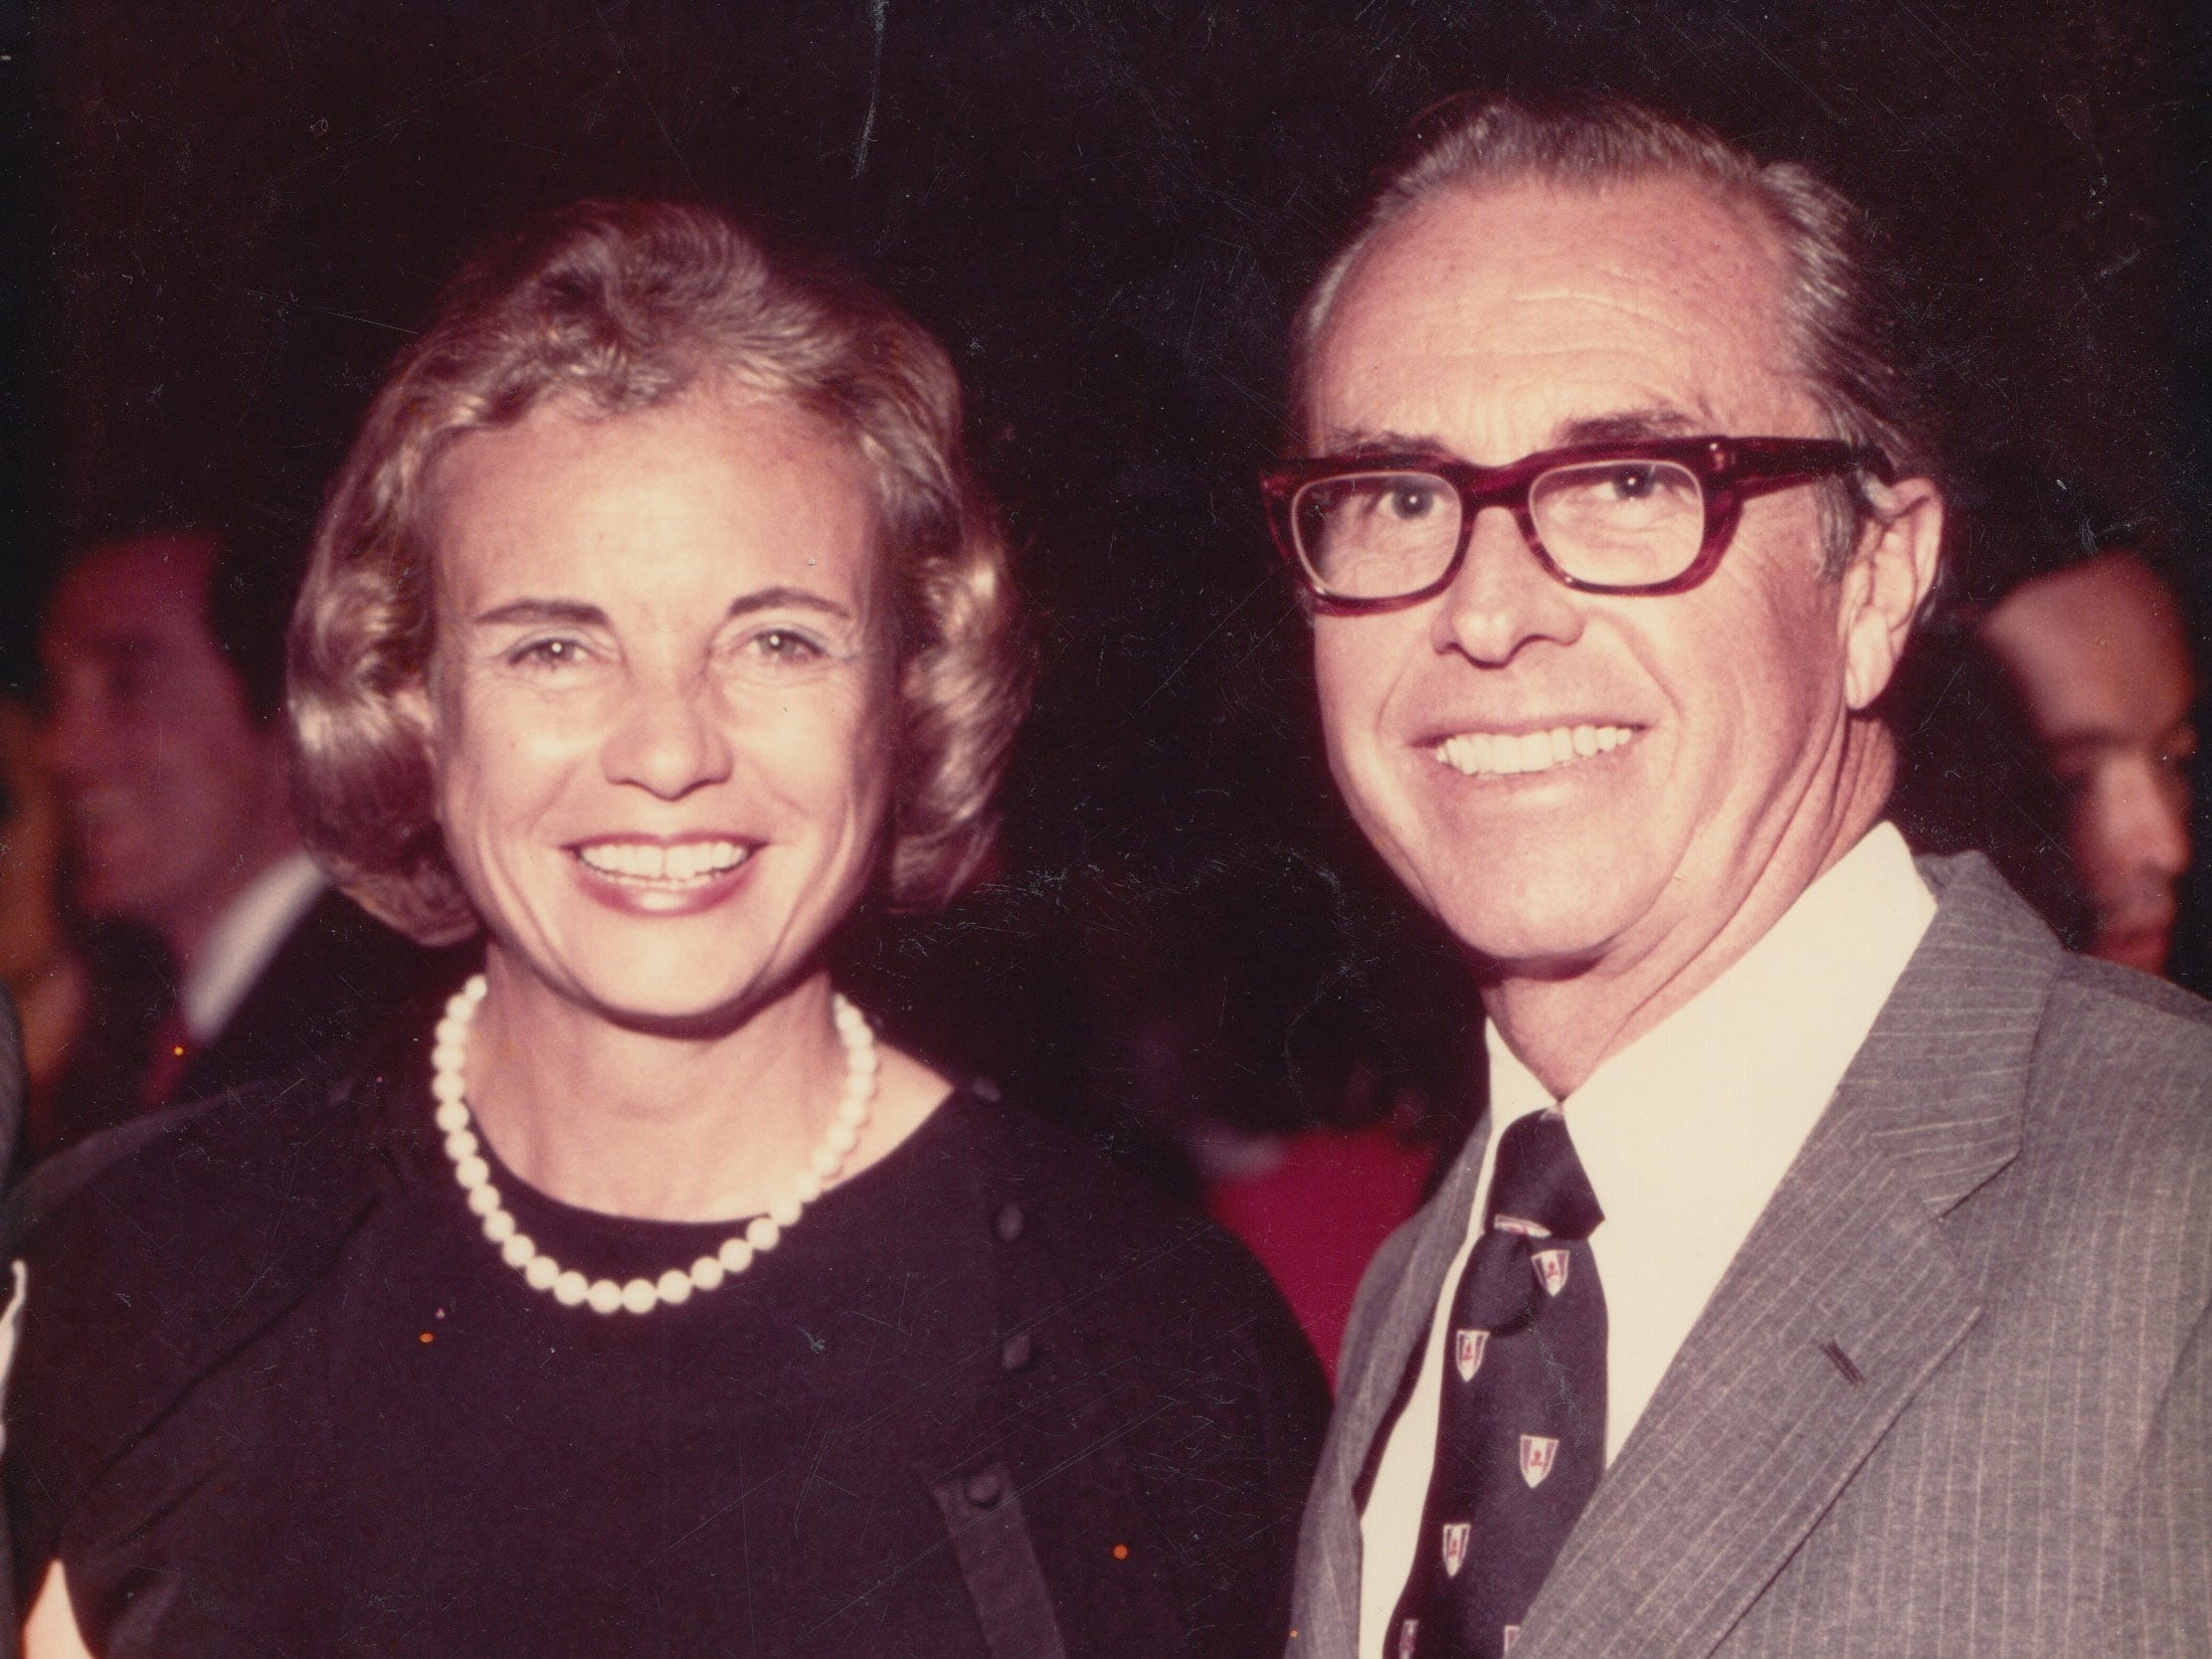 Sandra Day O'Connor and her husband, John Jay O'Connor III, when Sandra Day O'Connor was nominated to the Supreme Court in 1981.